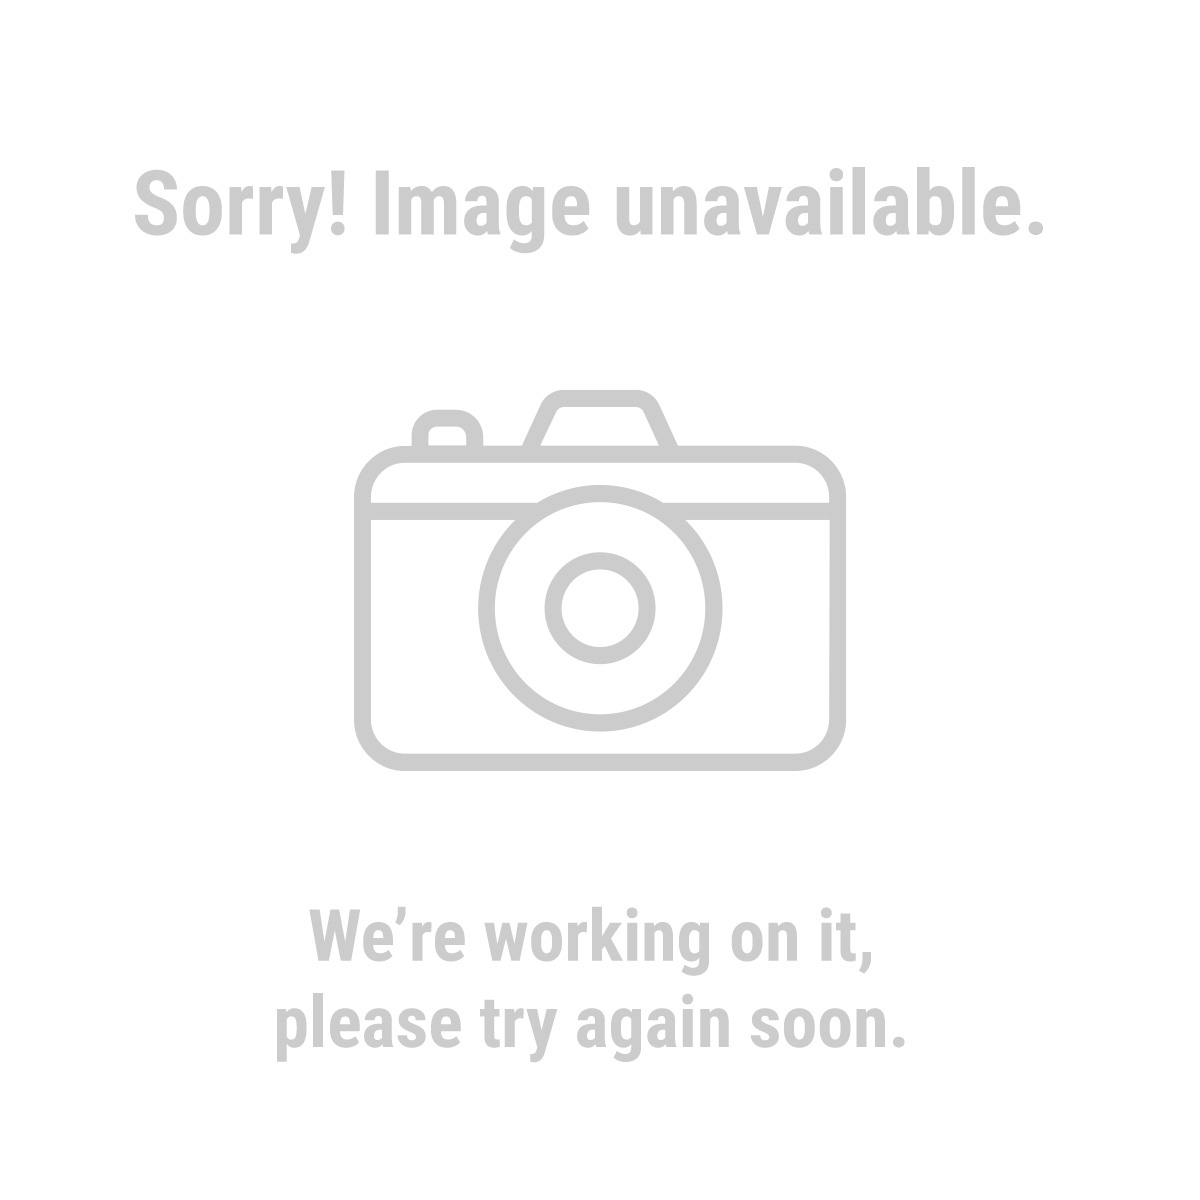 Storehouse 67527 285 Piece Metal Screw and Anchor Assortment Set